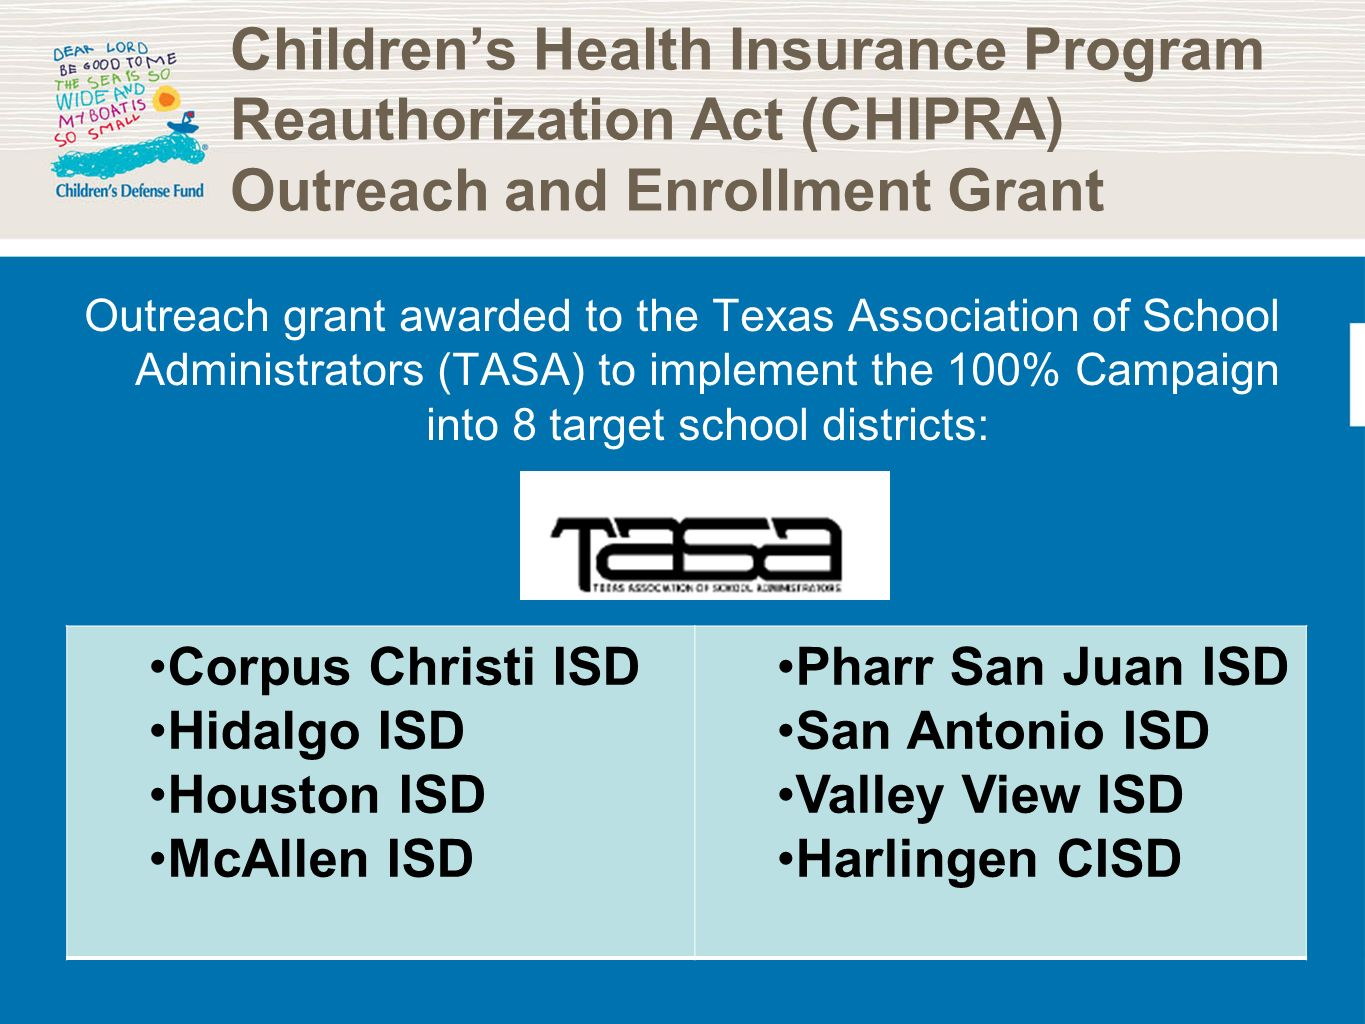 Childrens Health Insurance Program Reauthorization Act (CHIPRA) Outreach and Enrollment Grant Outreach grant awarded to the Texas Association of School Administrators (TASA) to implement the 100% Campaign into 8 target school districts: Corpus Christi ISD Hidalgo ISD Houston ISD McAllen ISD Pharr San Juan ISD San Antonio ISD Valley View ISD Harlingen CISD